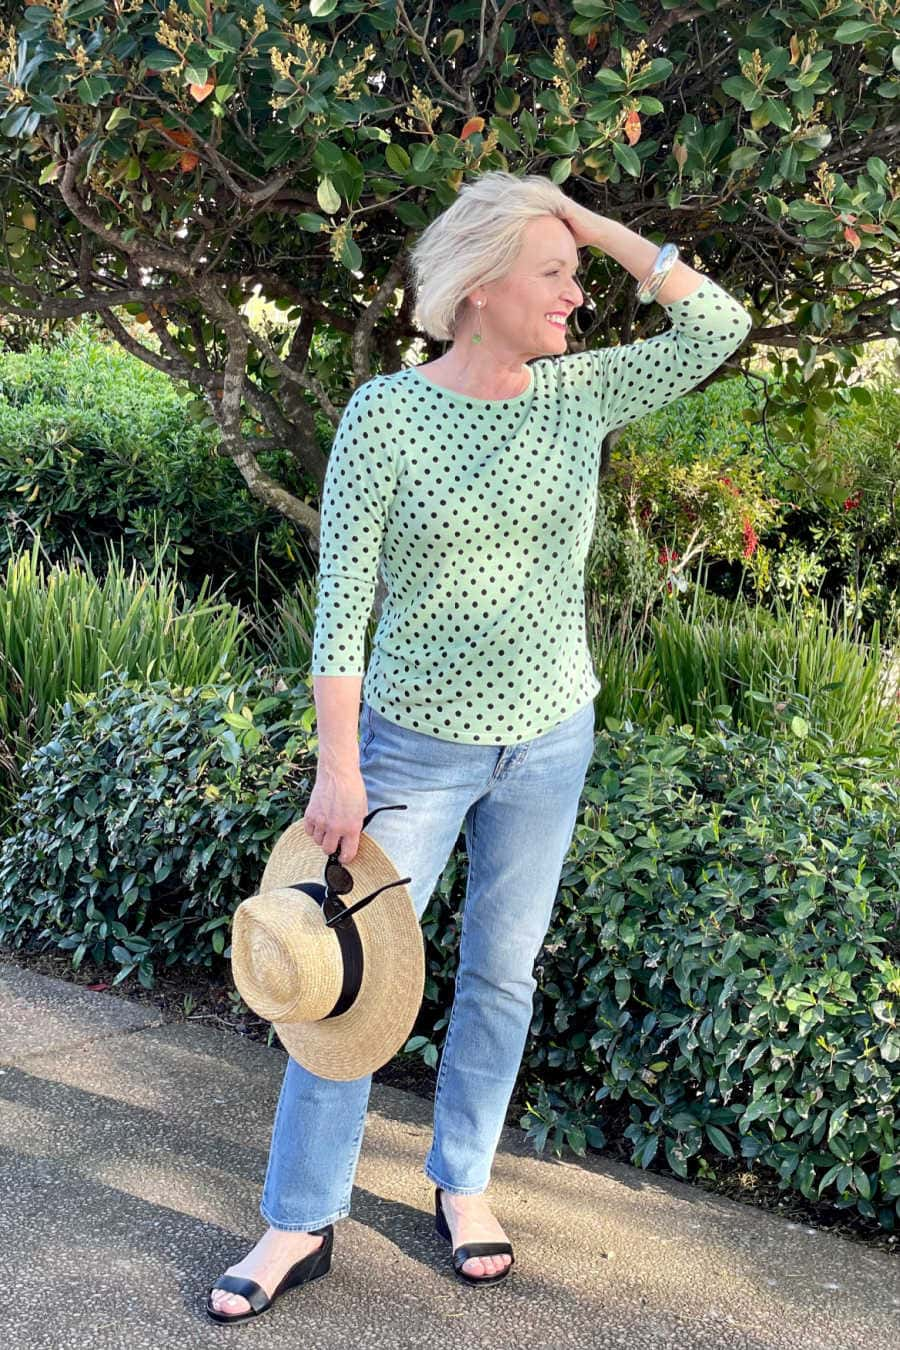 middle age woman wearing pale blue jeans and green polka dot sweater